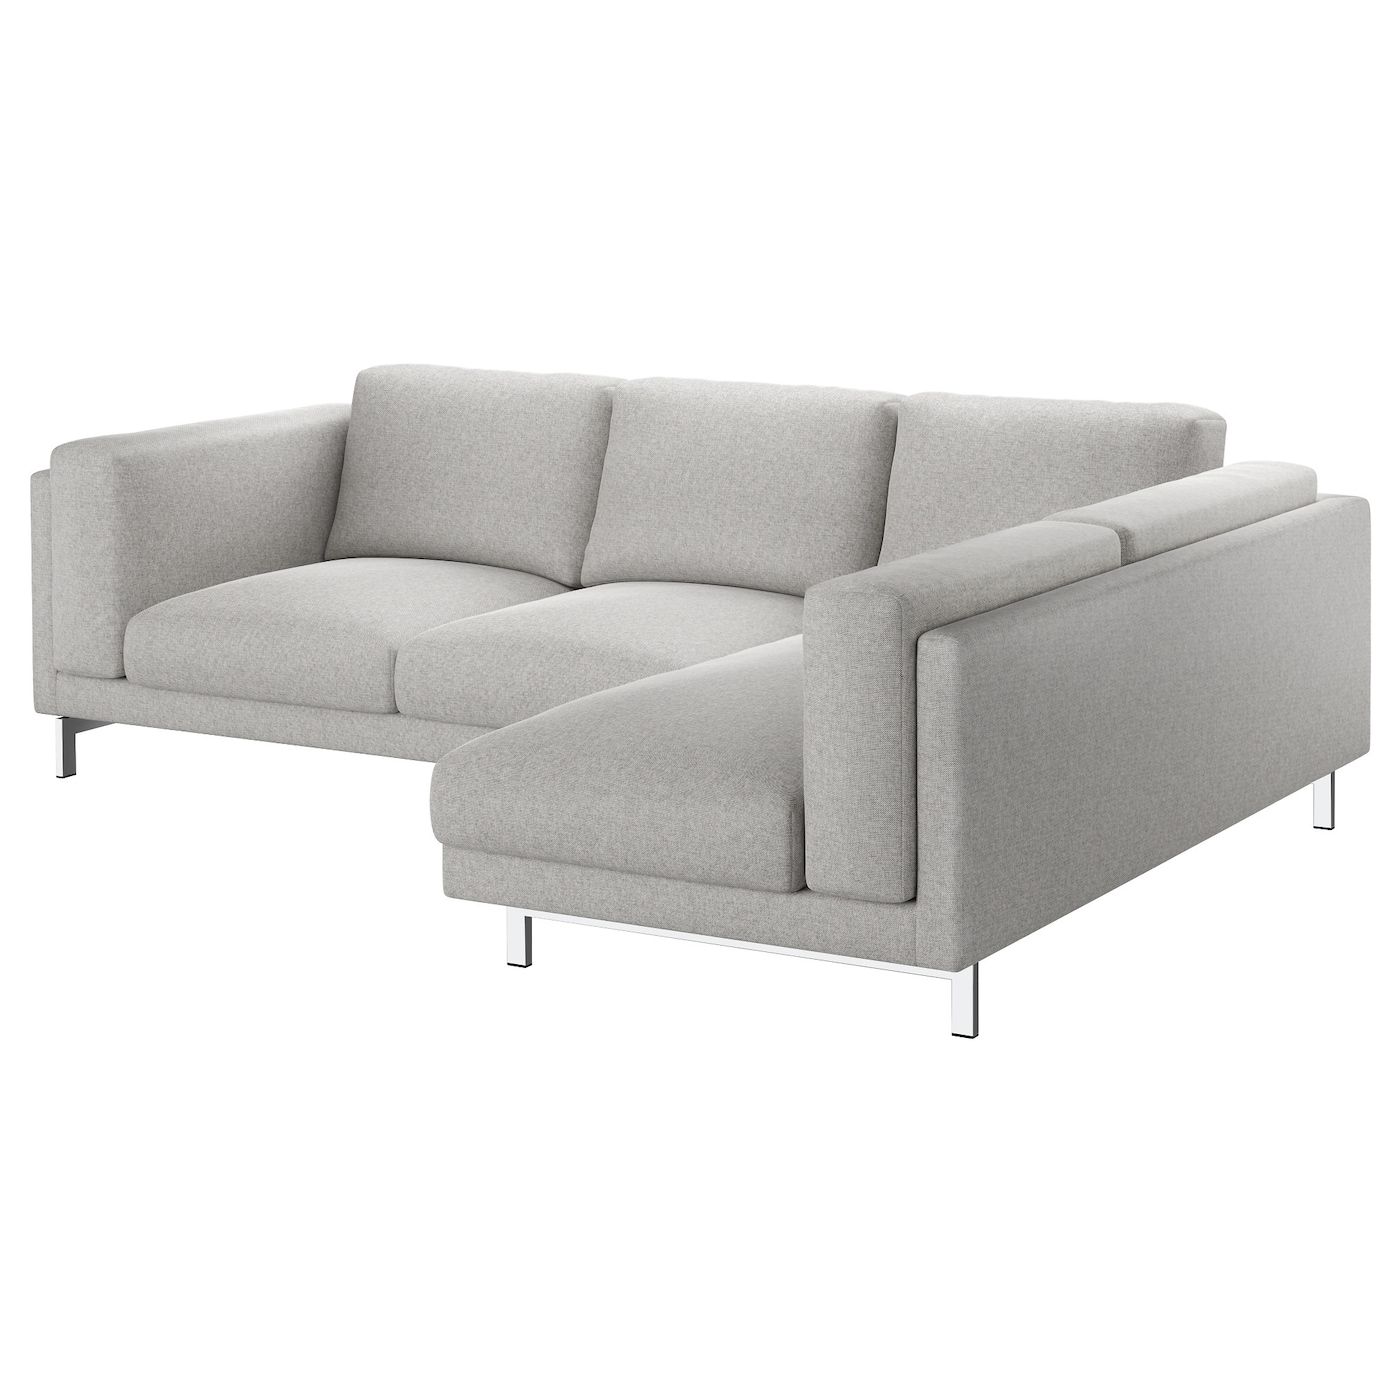 nockeby two seat sofa w chaise longue right tallmyra white. Black Bedroom Furniture Sets. Home Design Ideas